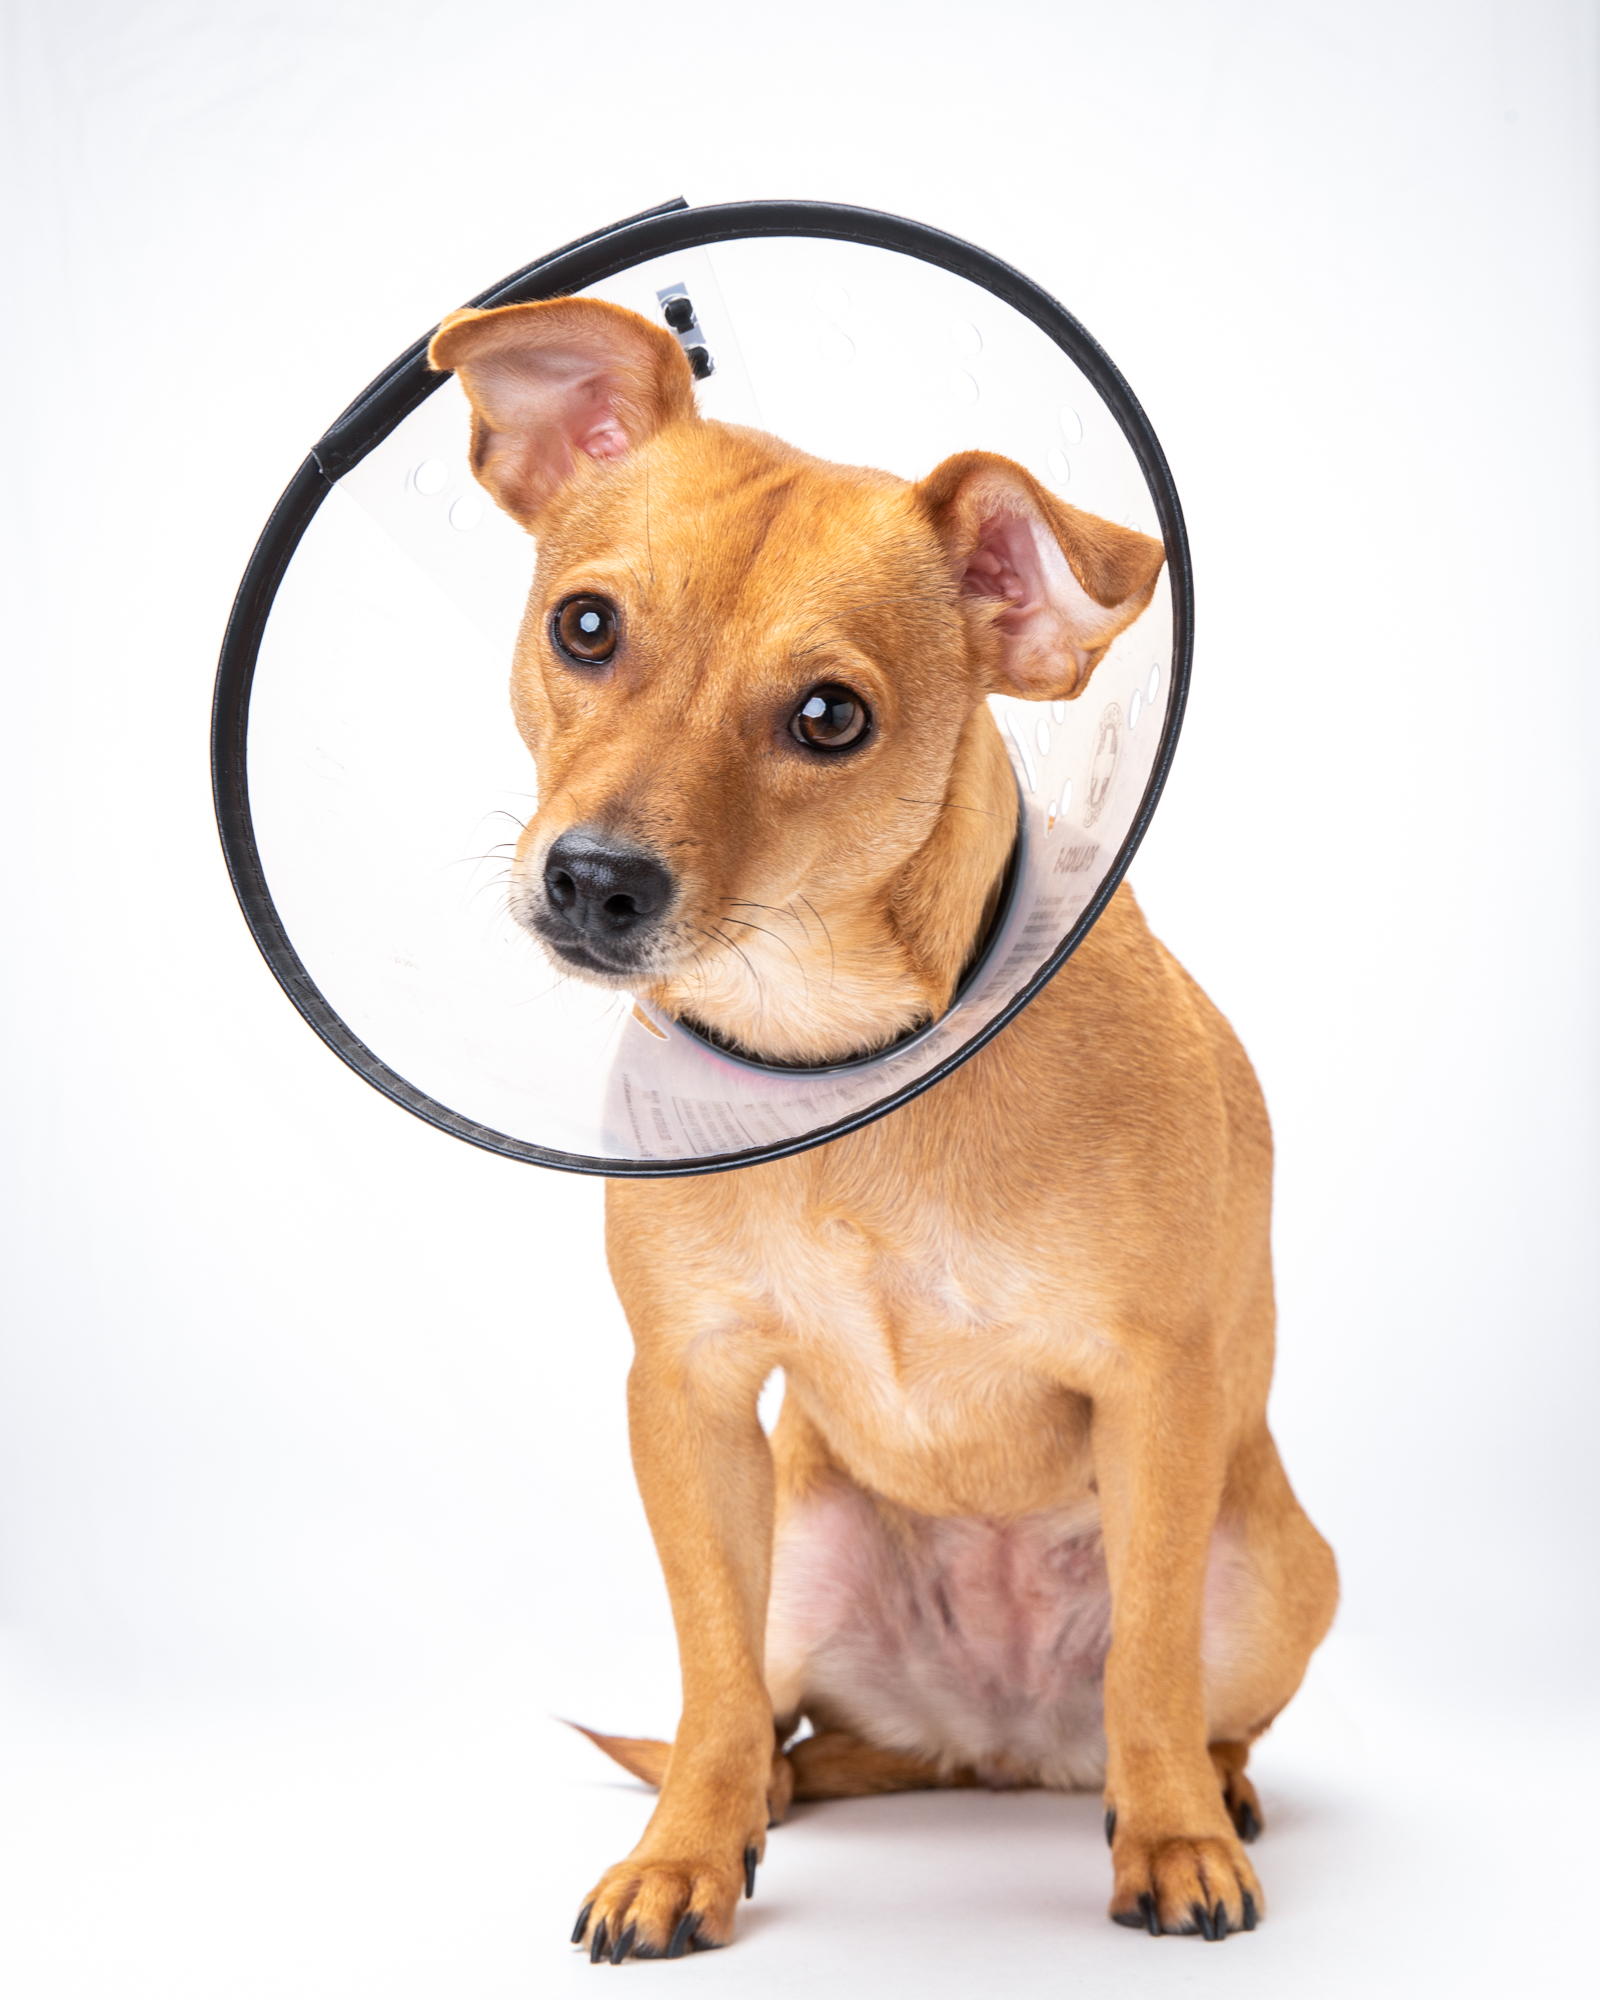 Mark Rogers photographs a sweet puppy in a cone of shame for Healthy Paws Pet Insurance